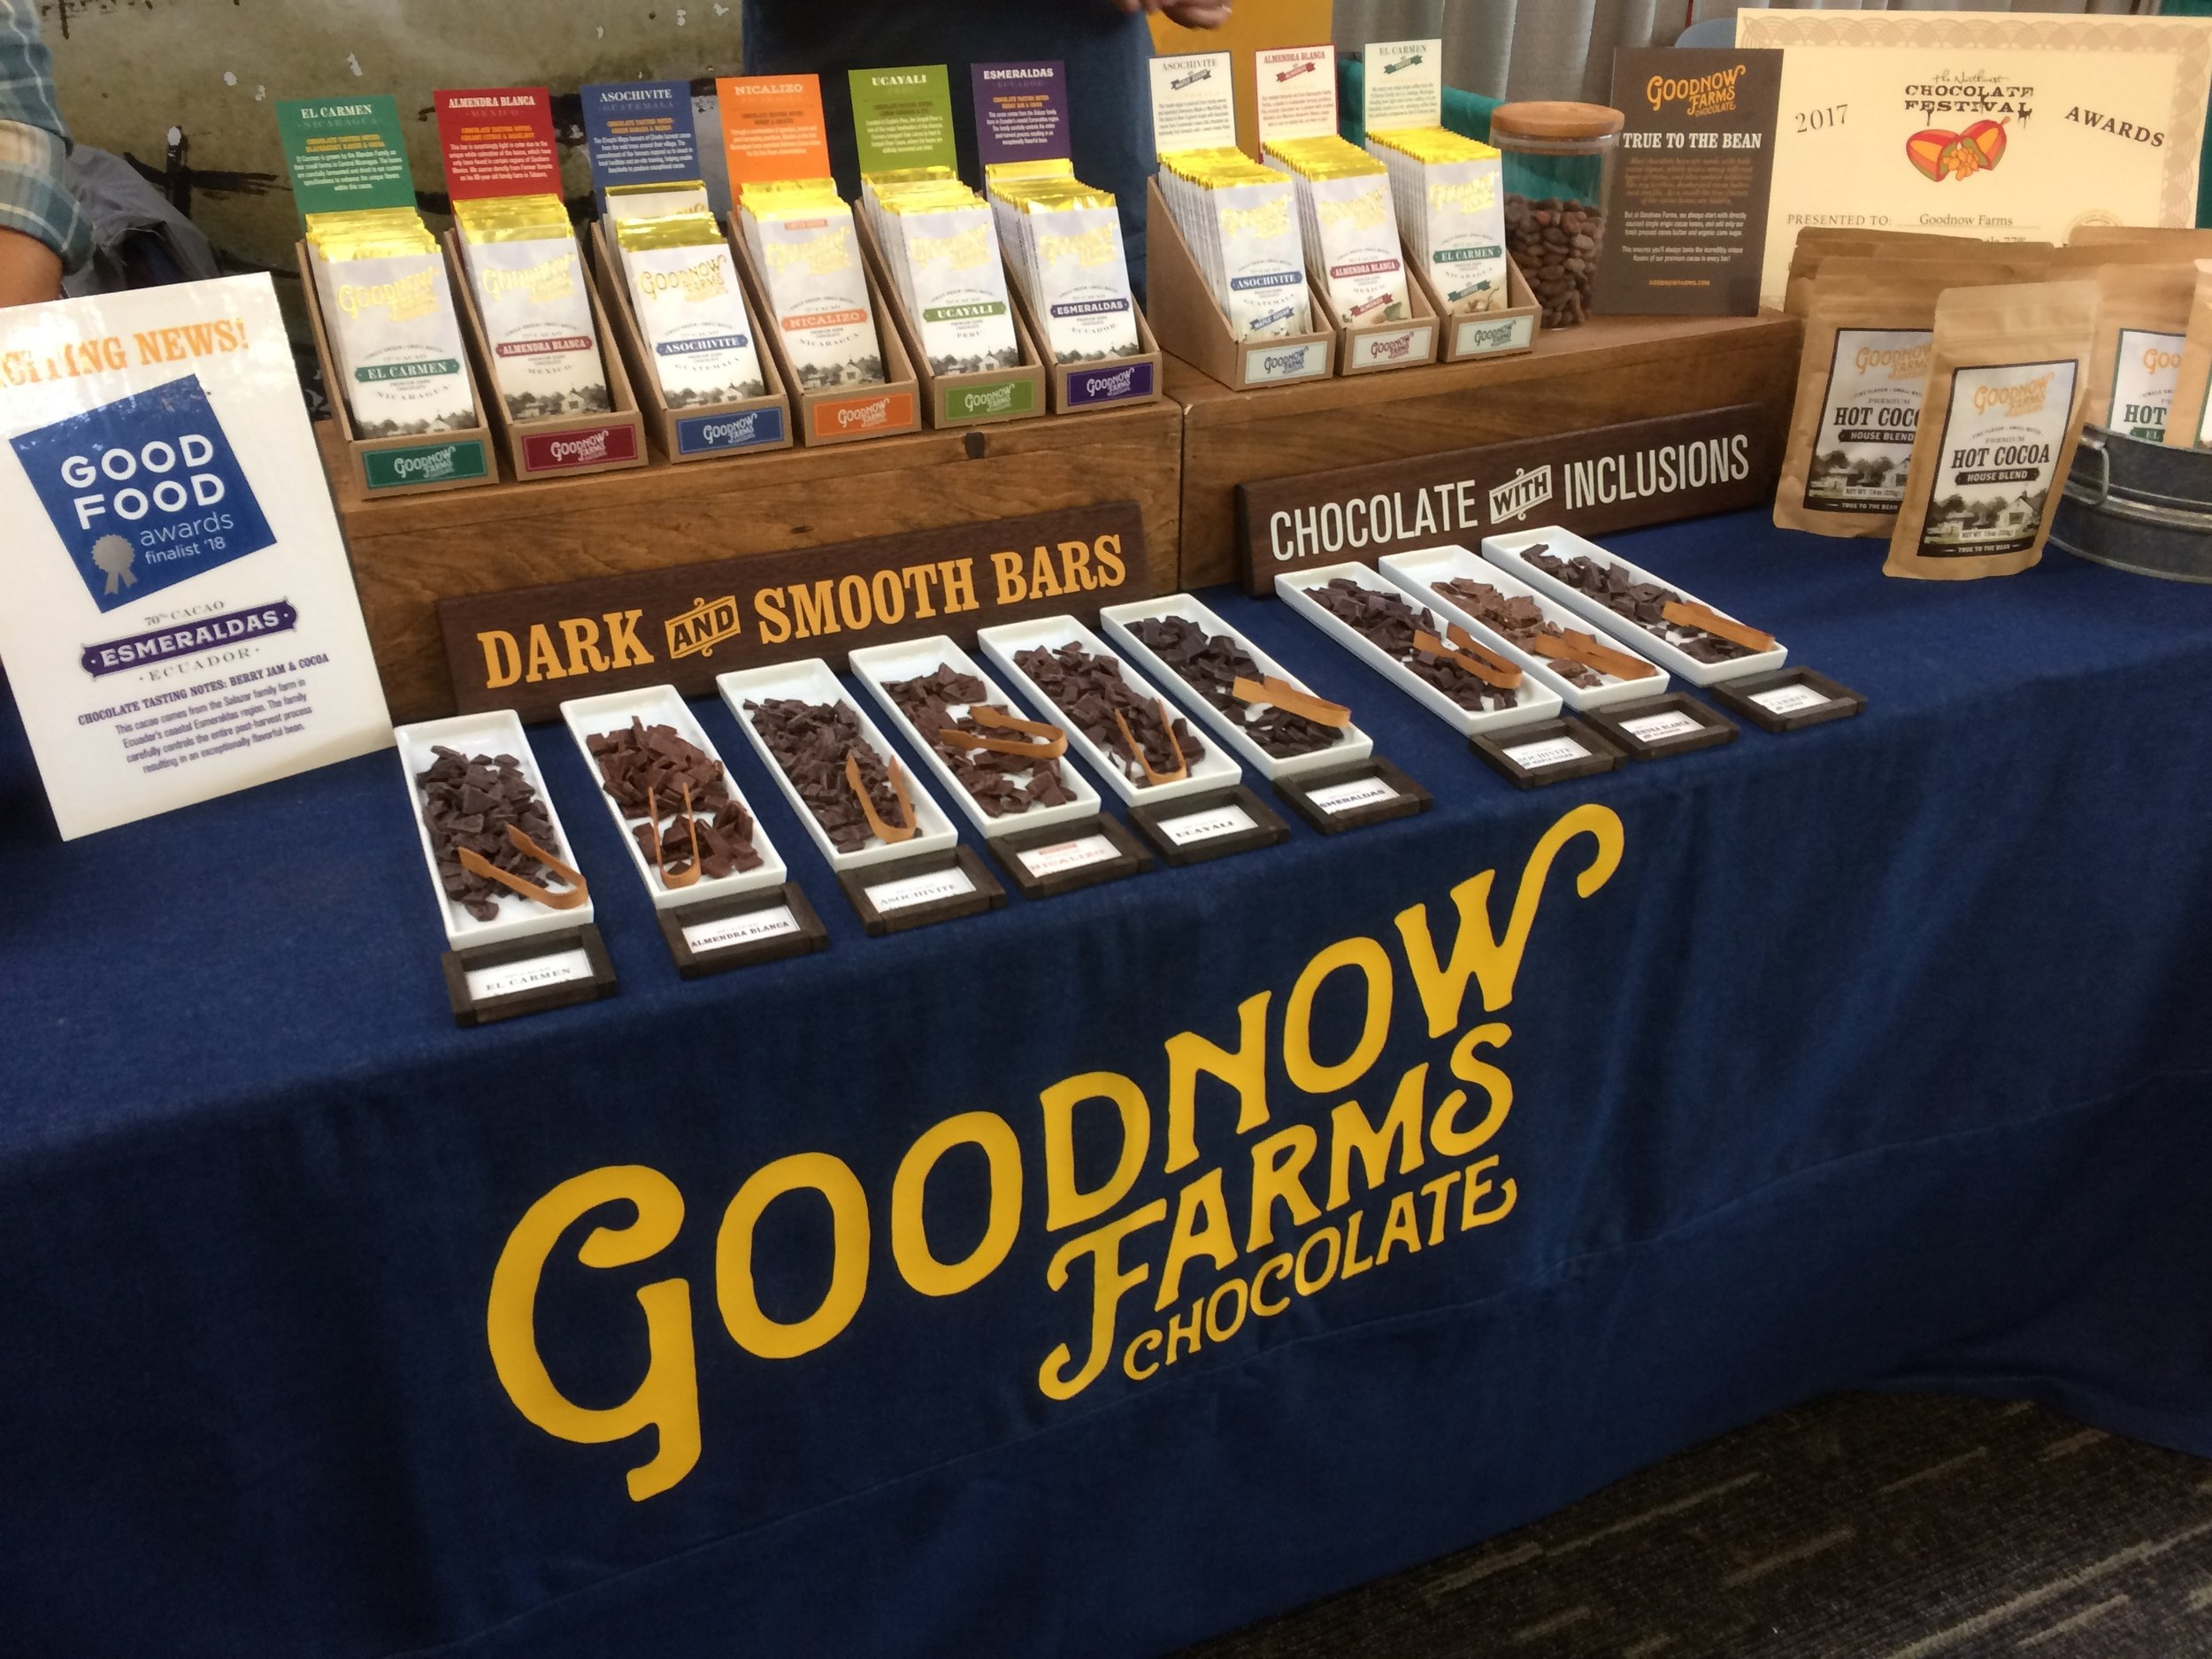 Goodnow Farms display at the Northwest Chocolate Festival, November 2017. (Photo by S. Sketchley)